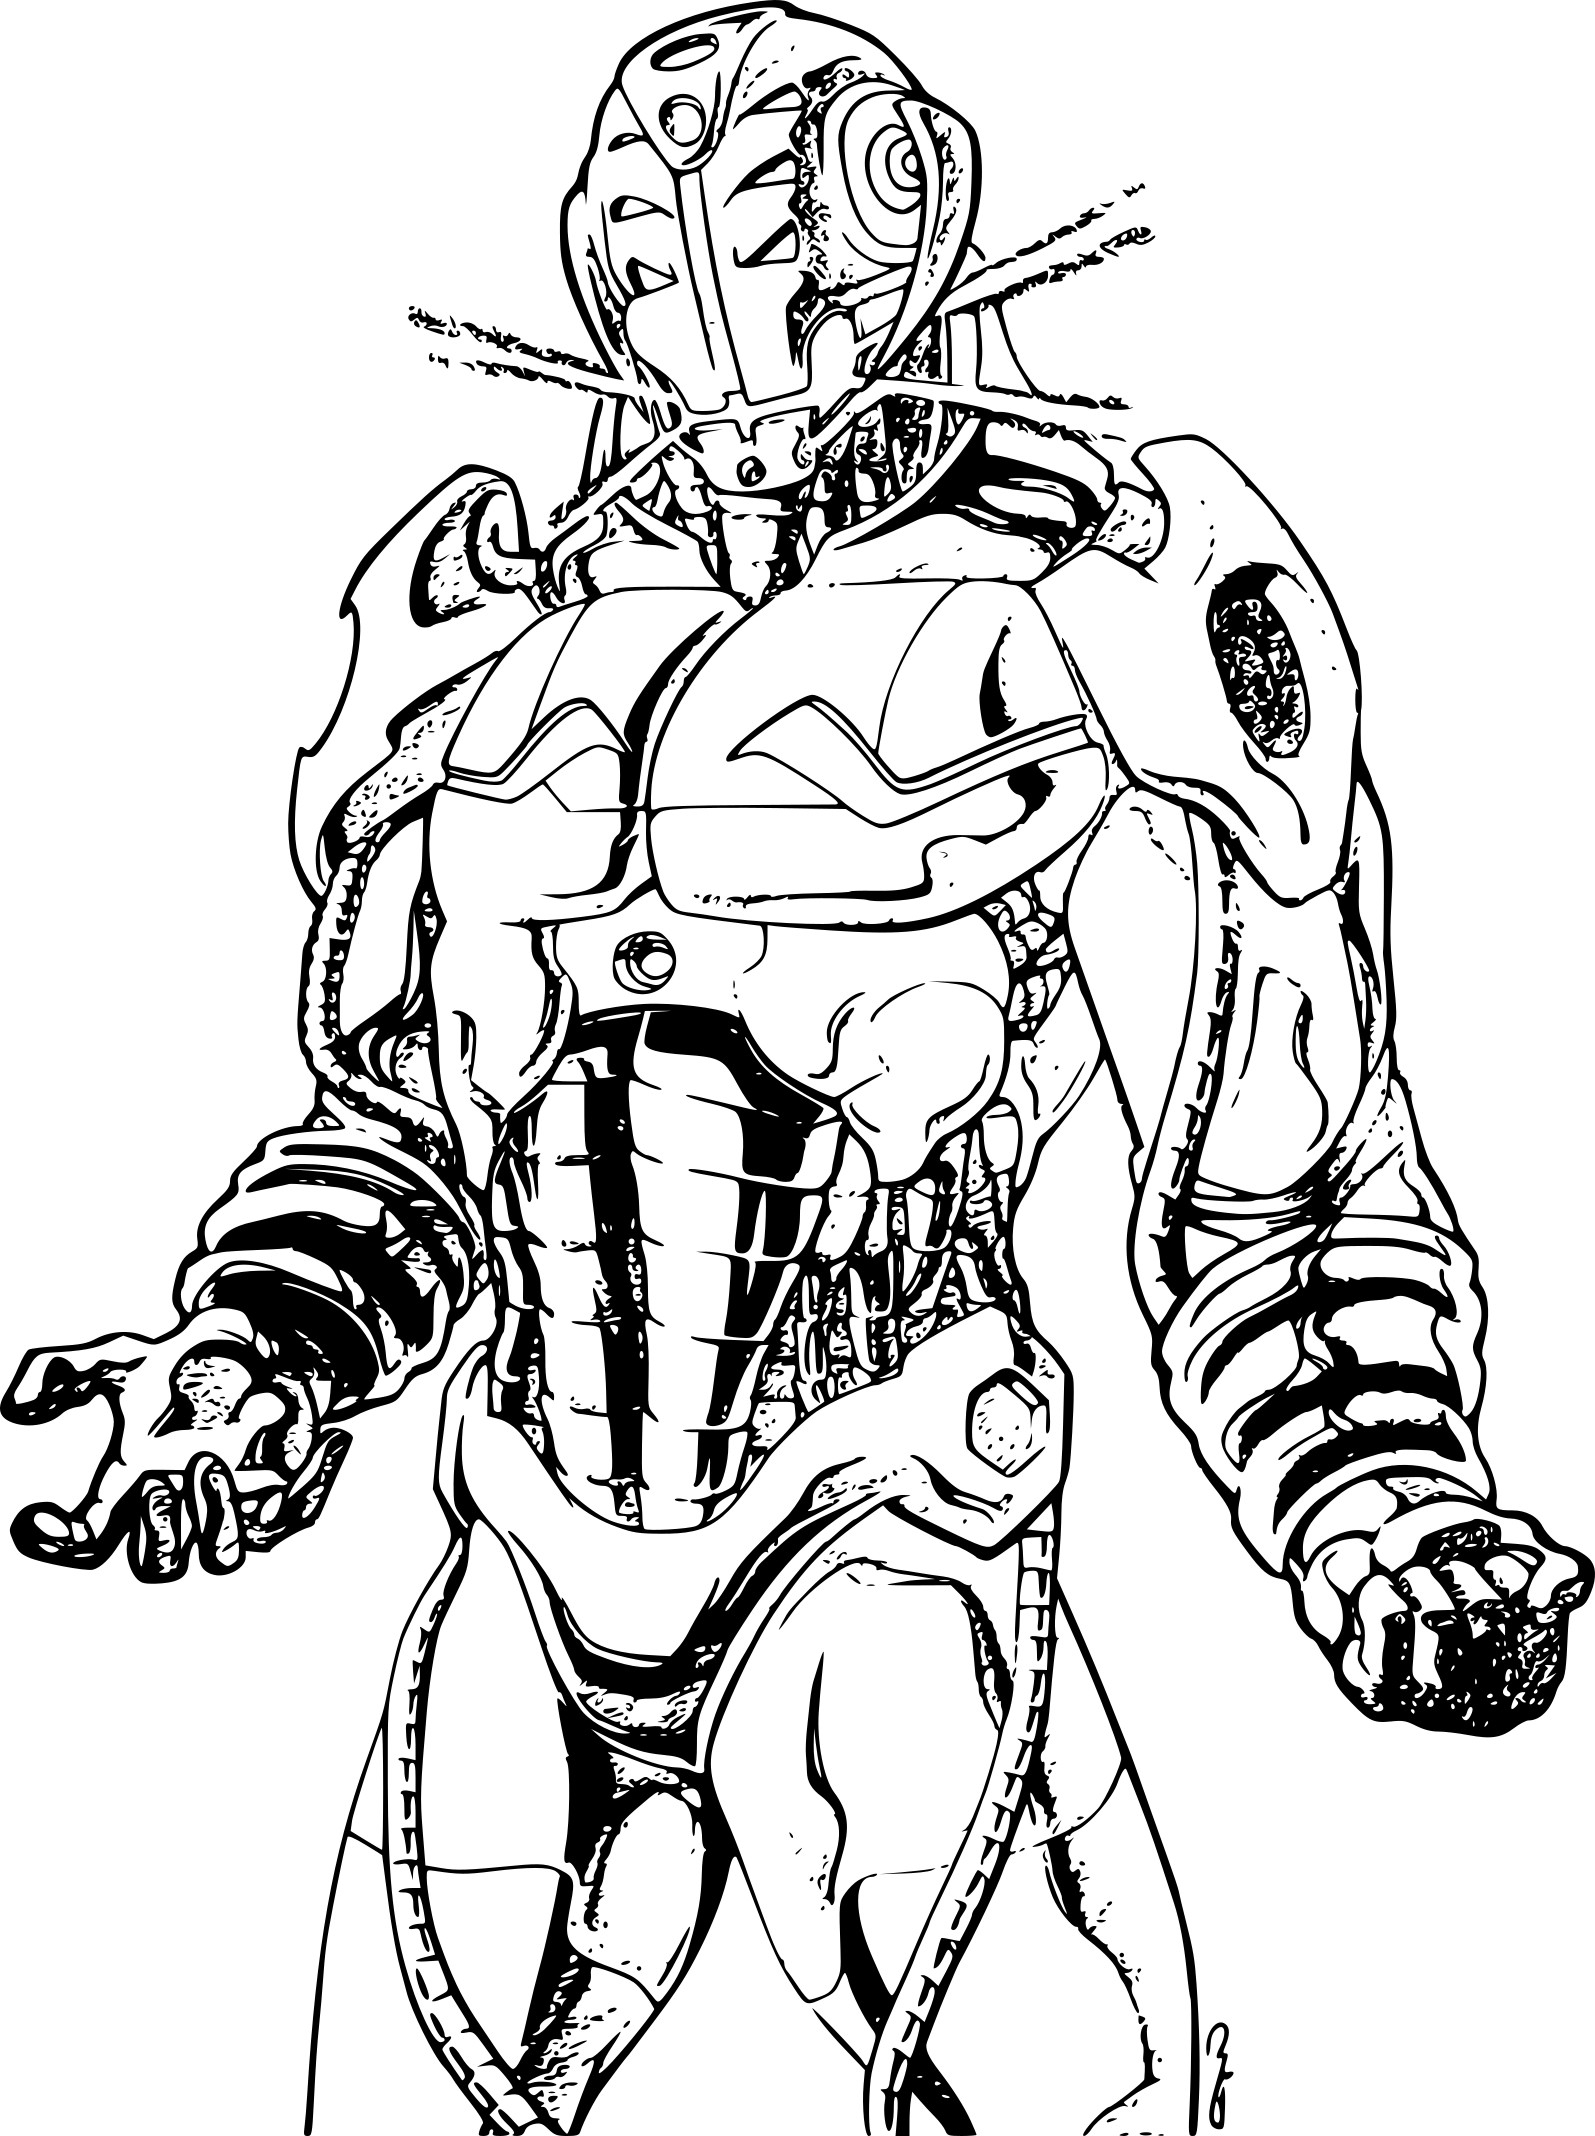 iron man coloring pages - ultron